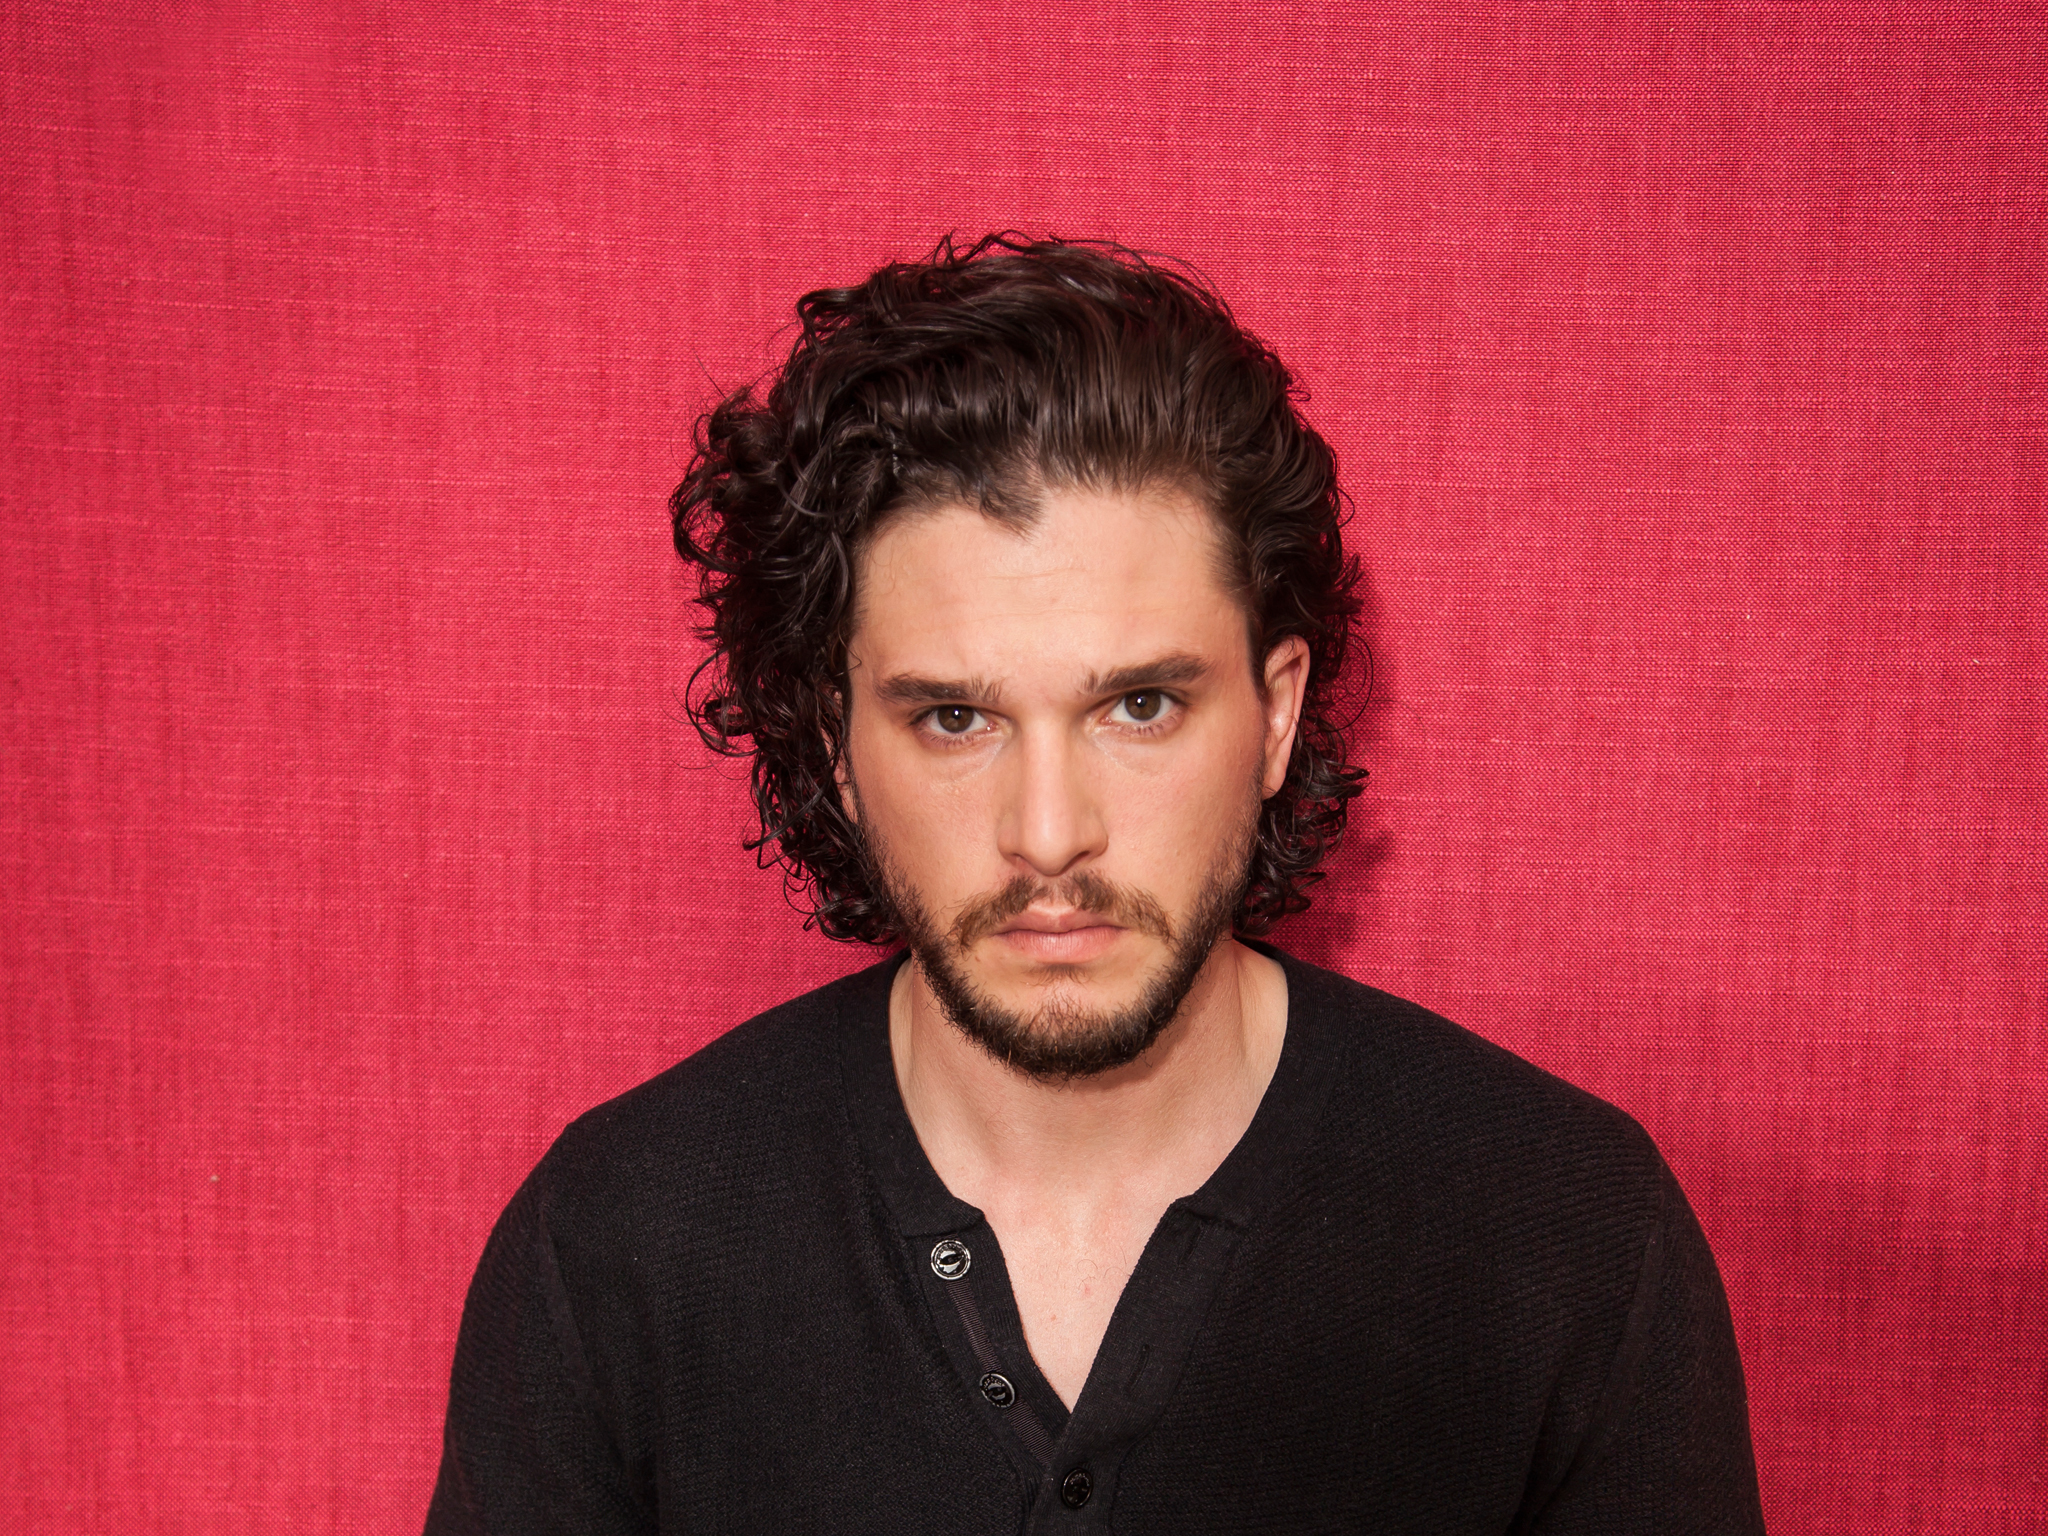 Kit Harington on leaving 'Game of Thrones' and plunging straight into hell